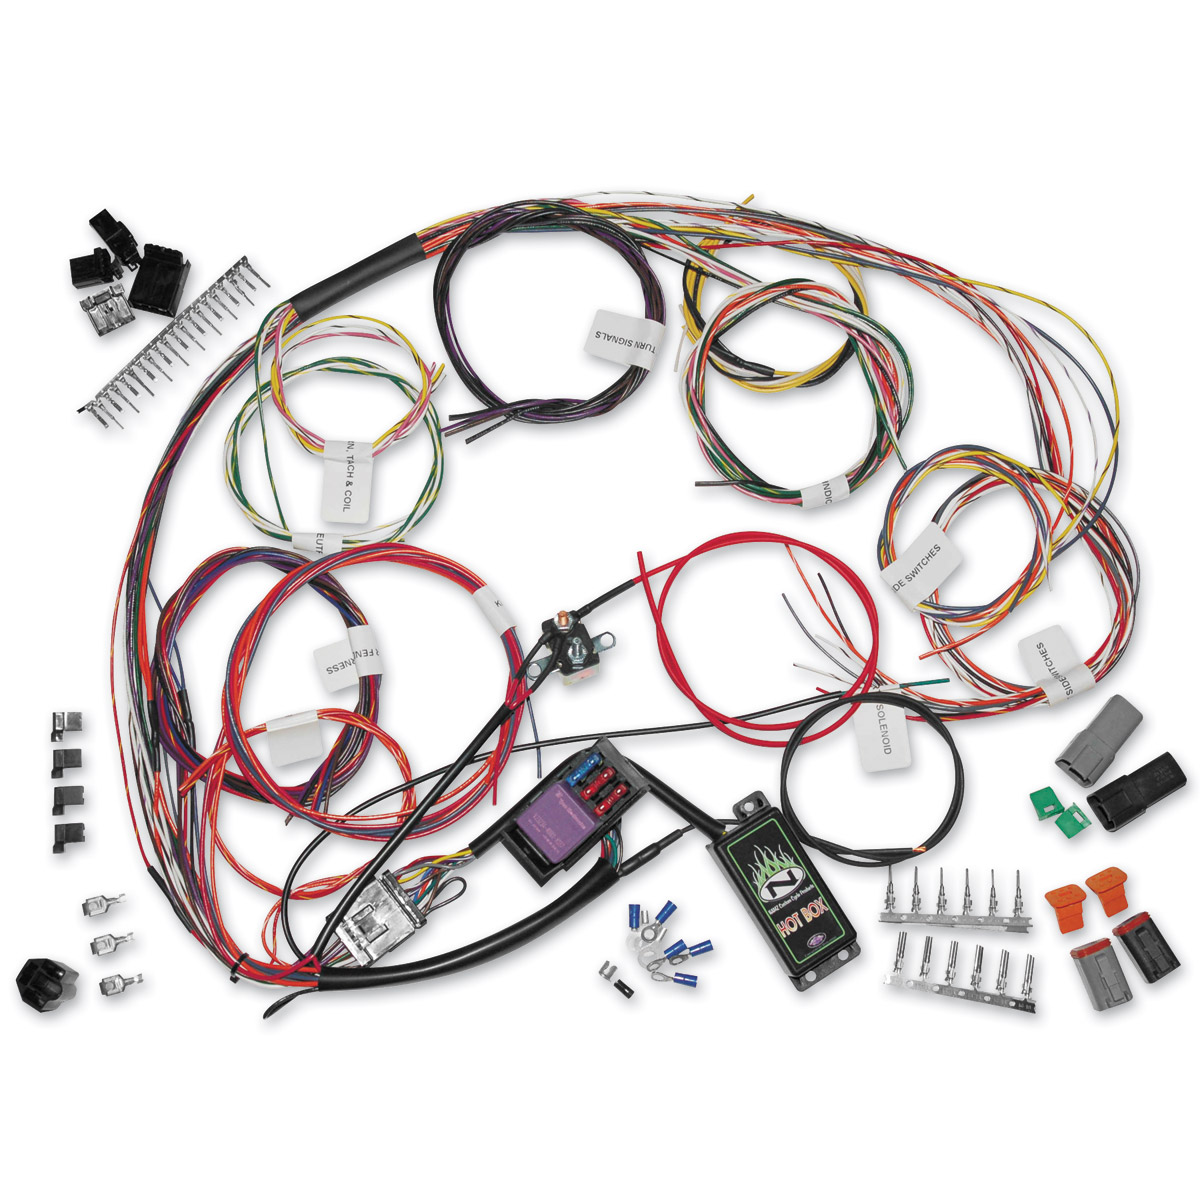 745 072_A harley davidson sportster wiring harness kits j&p cycles Harley Wiring Diagram for Dummies at gsmx.co